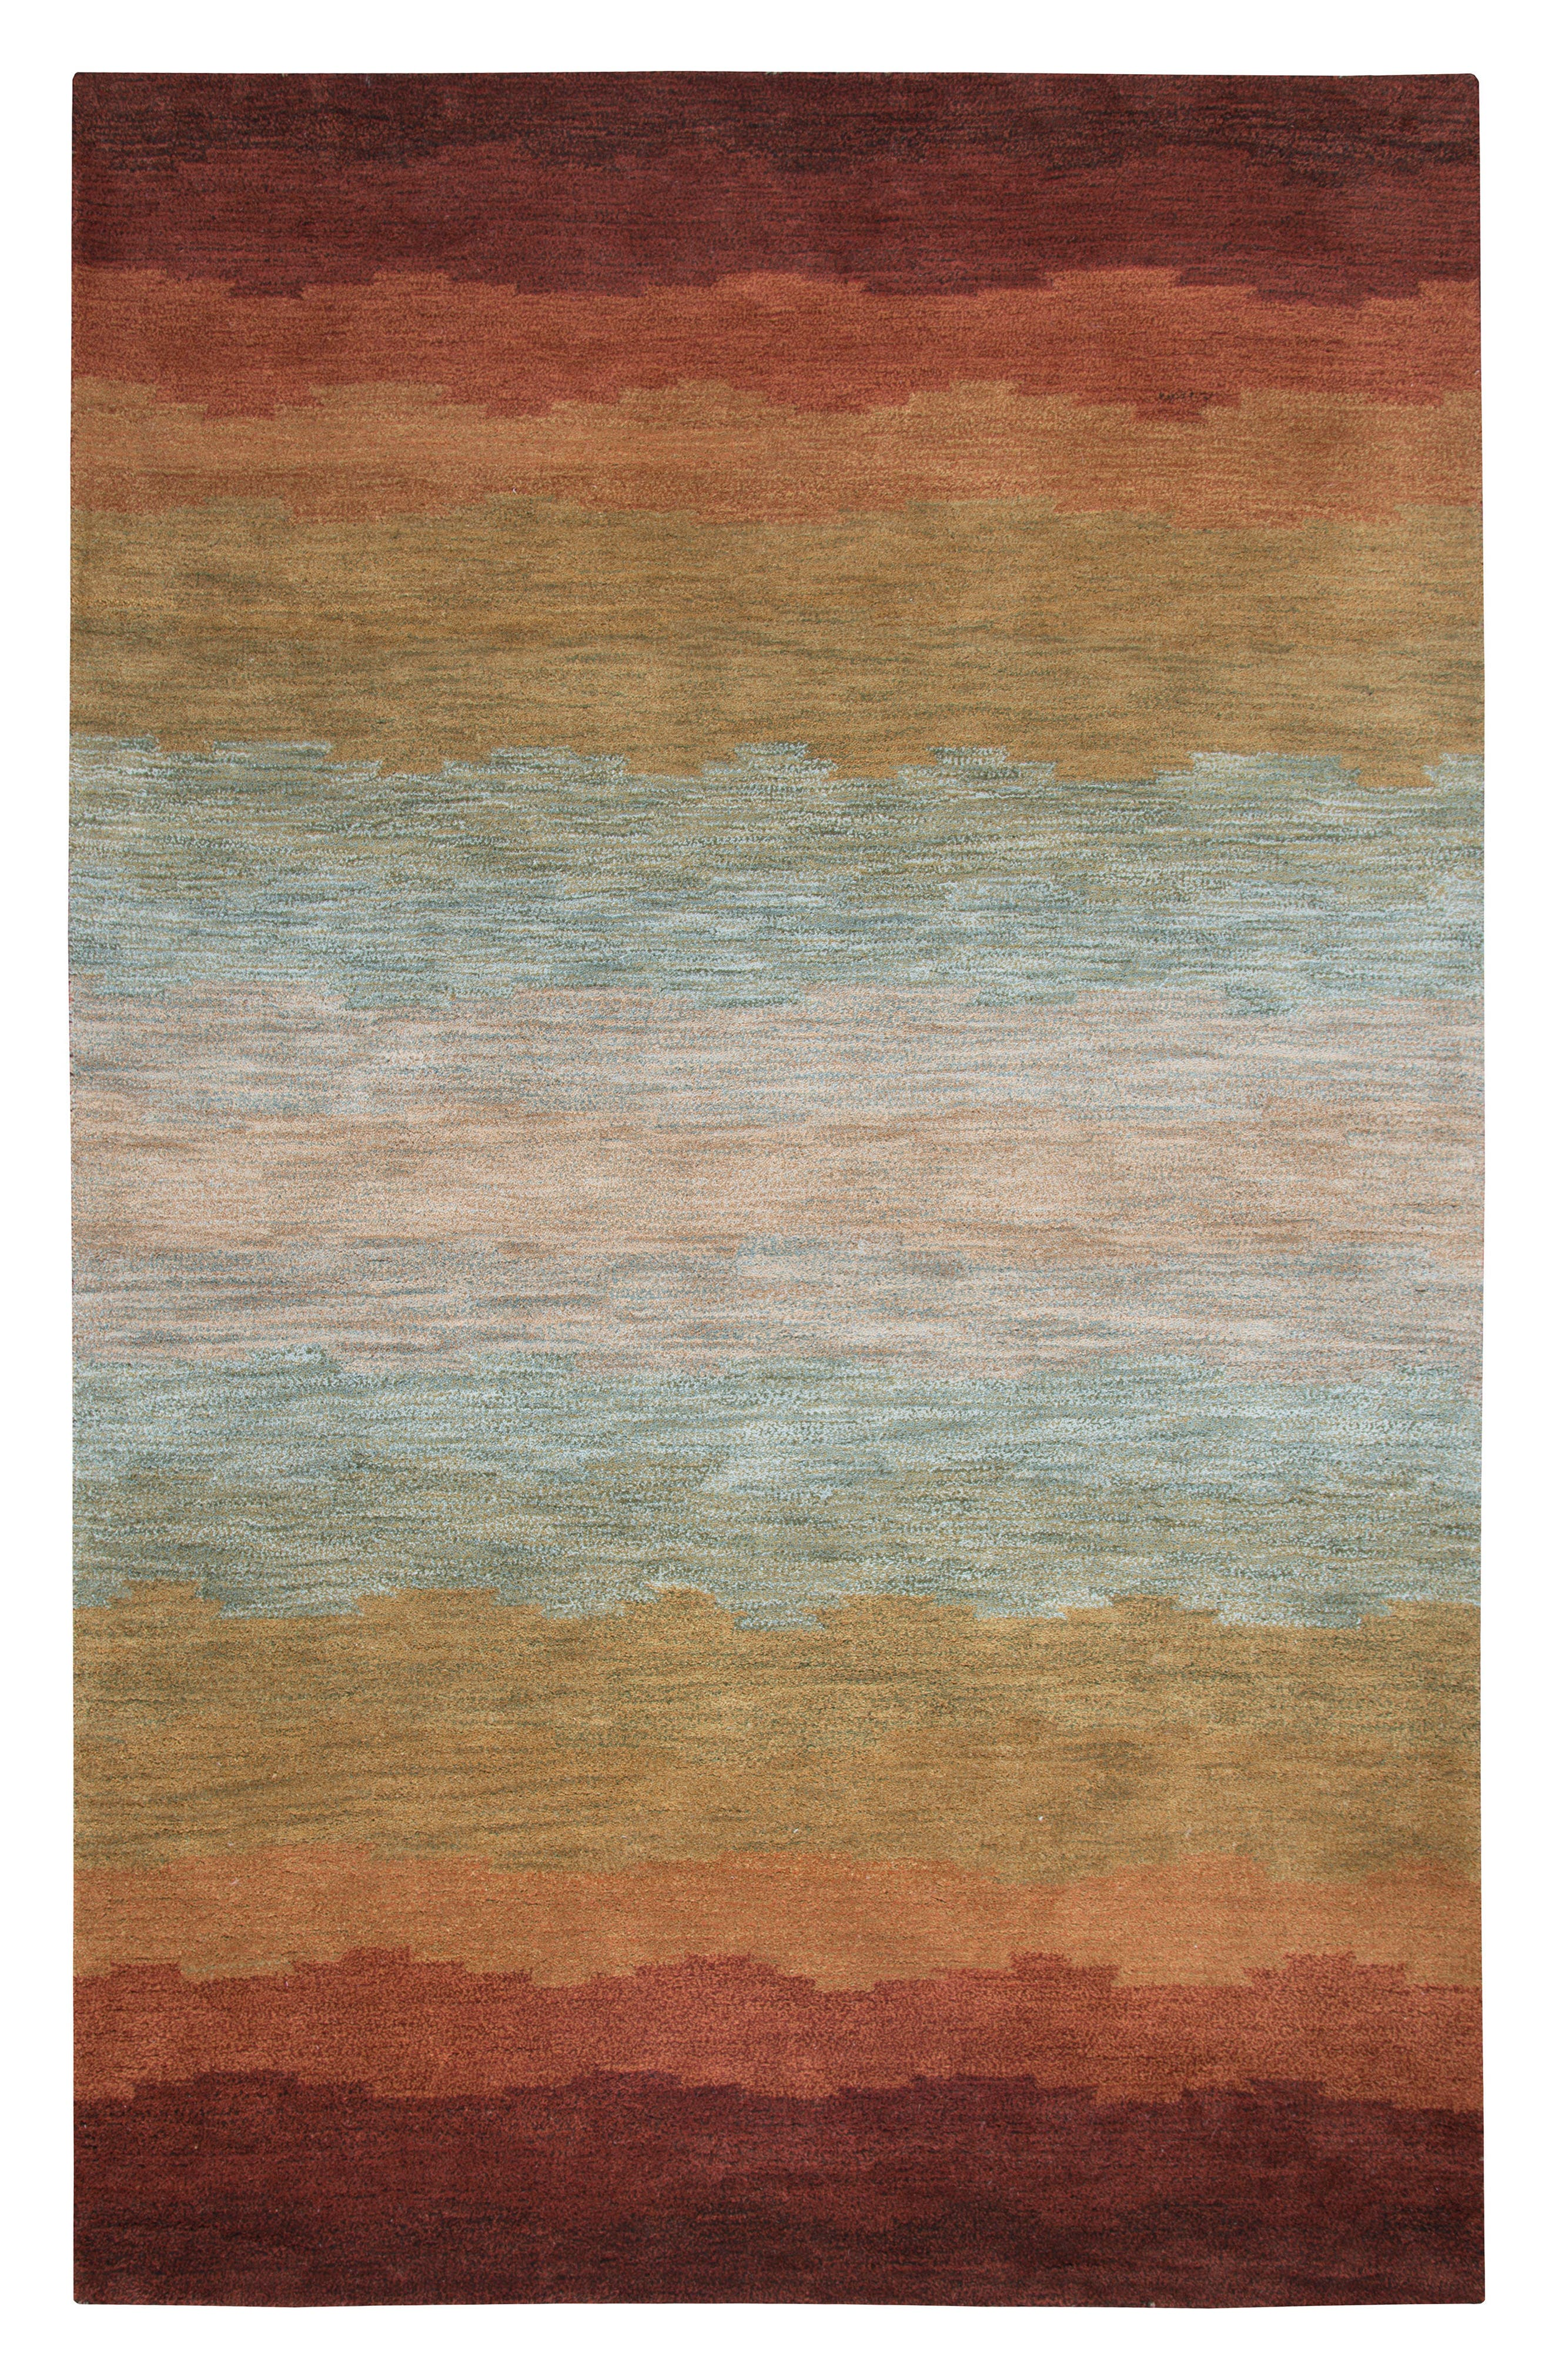 Alternate Image 1 Selected - Rizzy Home Desert Oasis Hand Tufted Wool Area Rug